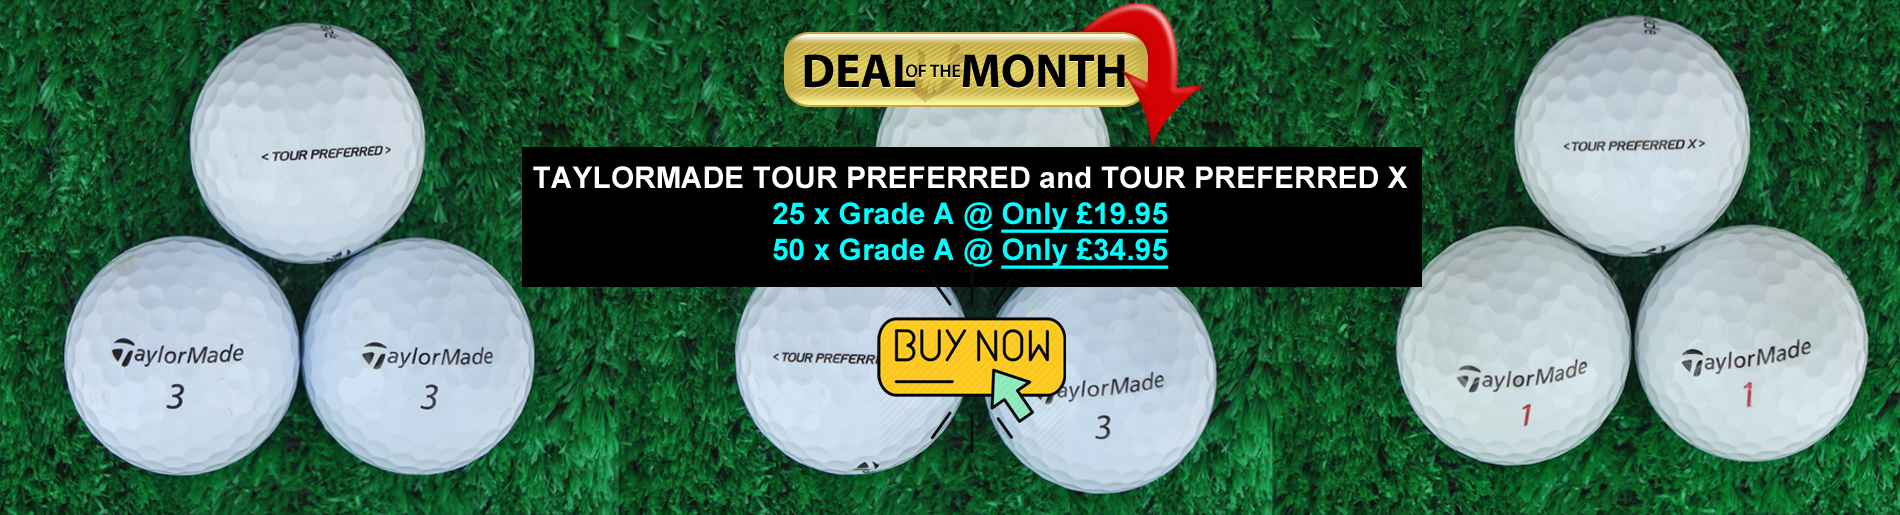 Taylormade Tour Preferred Deal of Month